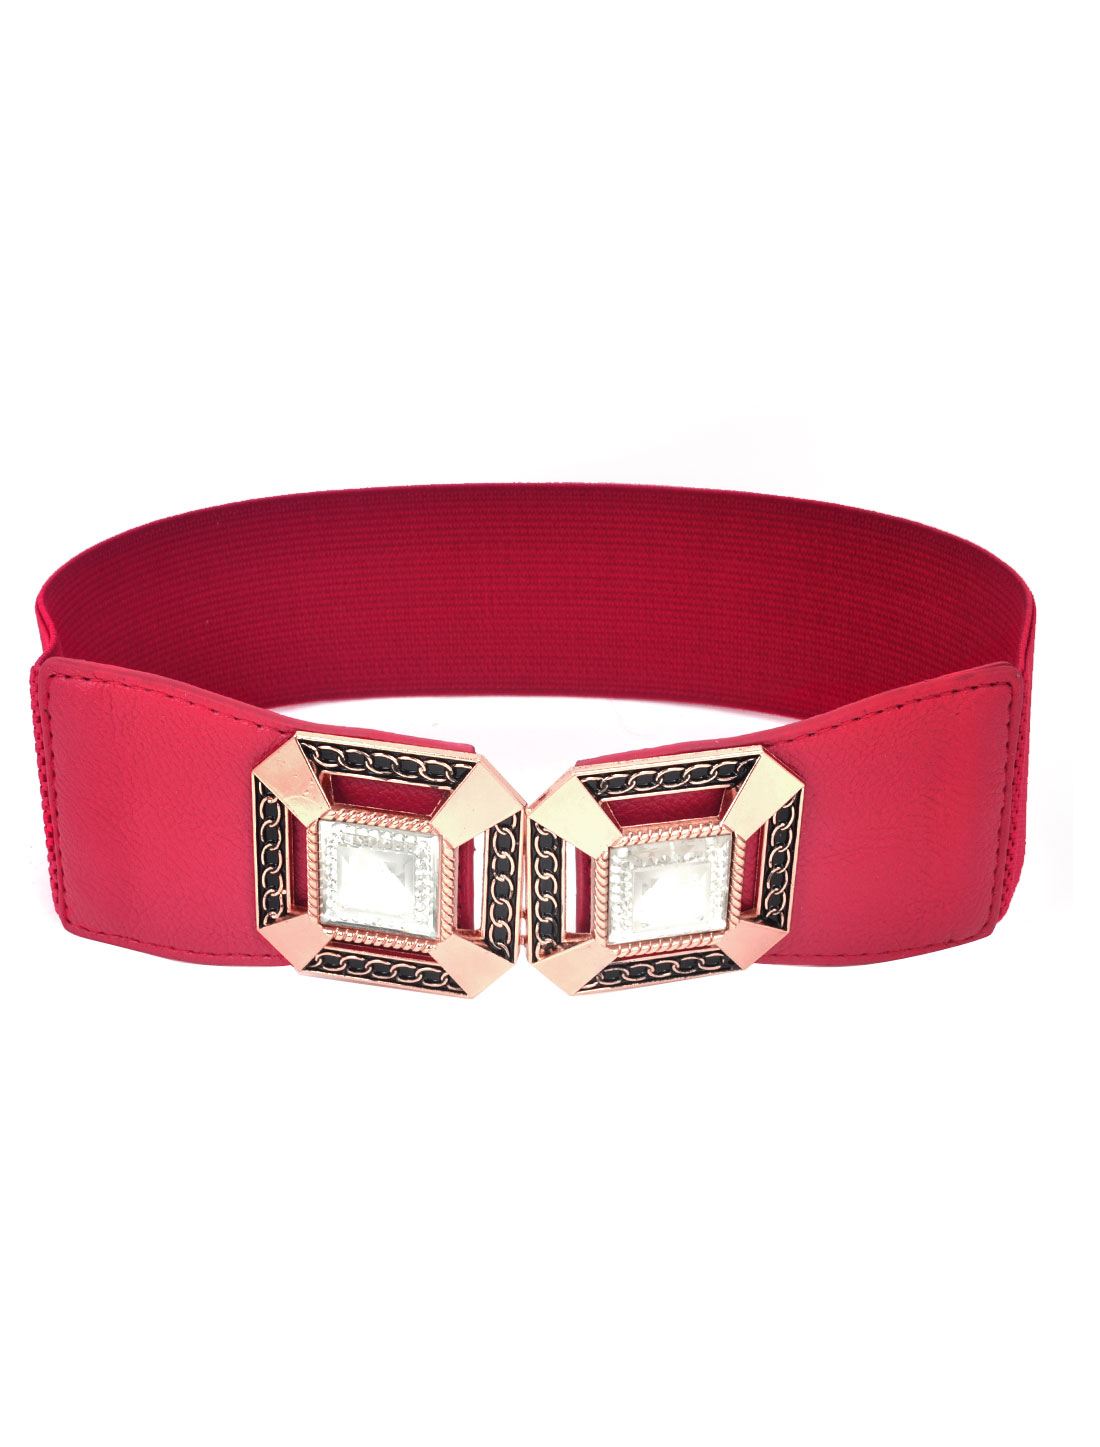 Woman Red Faux Leather Buckle Part Textured Elastic Cinch Belt Skirt Decor